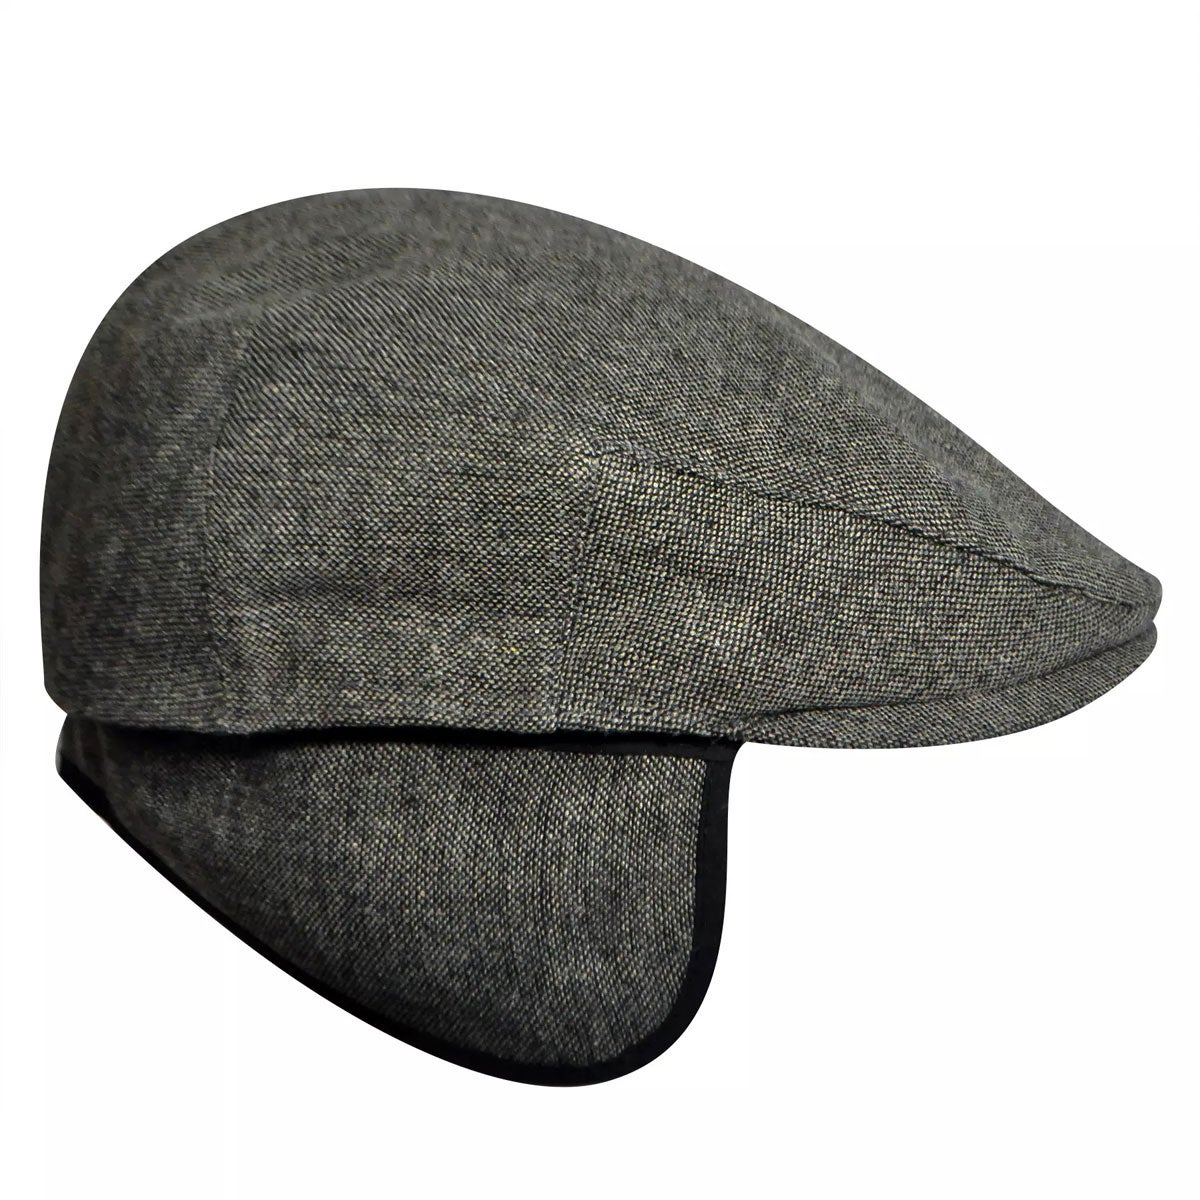 Men's Vintage Workwear – 1920s, 1930s, 1940s, 1950s Ainsley Earflap Flat Cap $40.00 AT vintagedancer.com